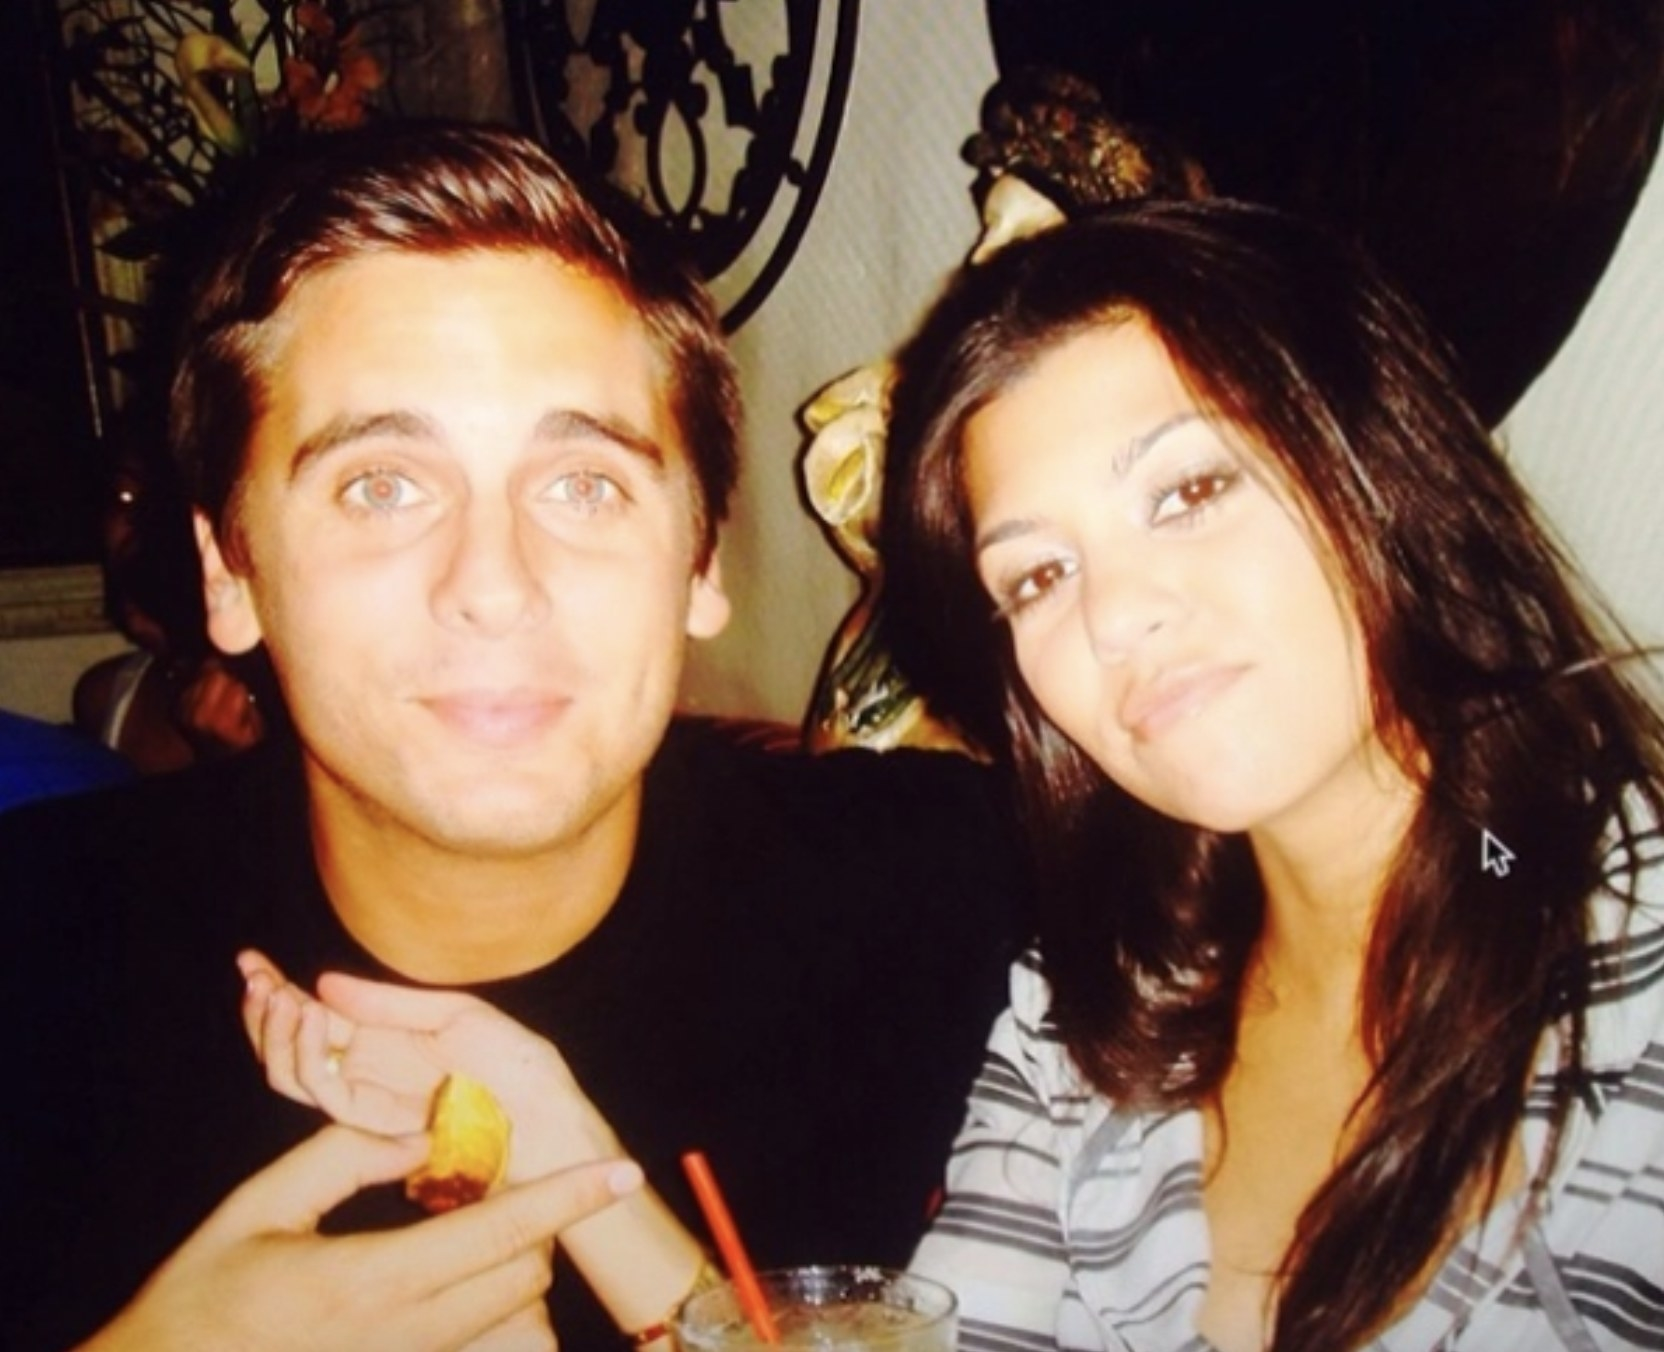 A very young Scott and Kourtney looking into the camera